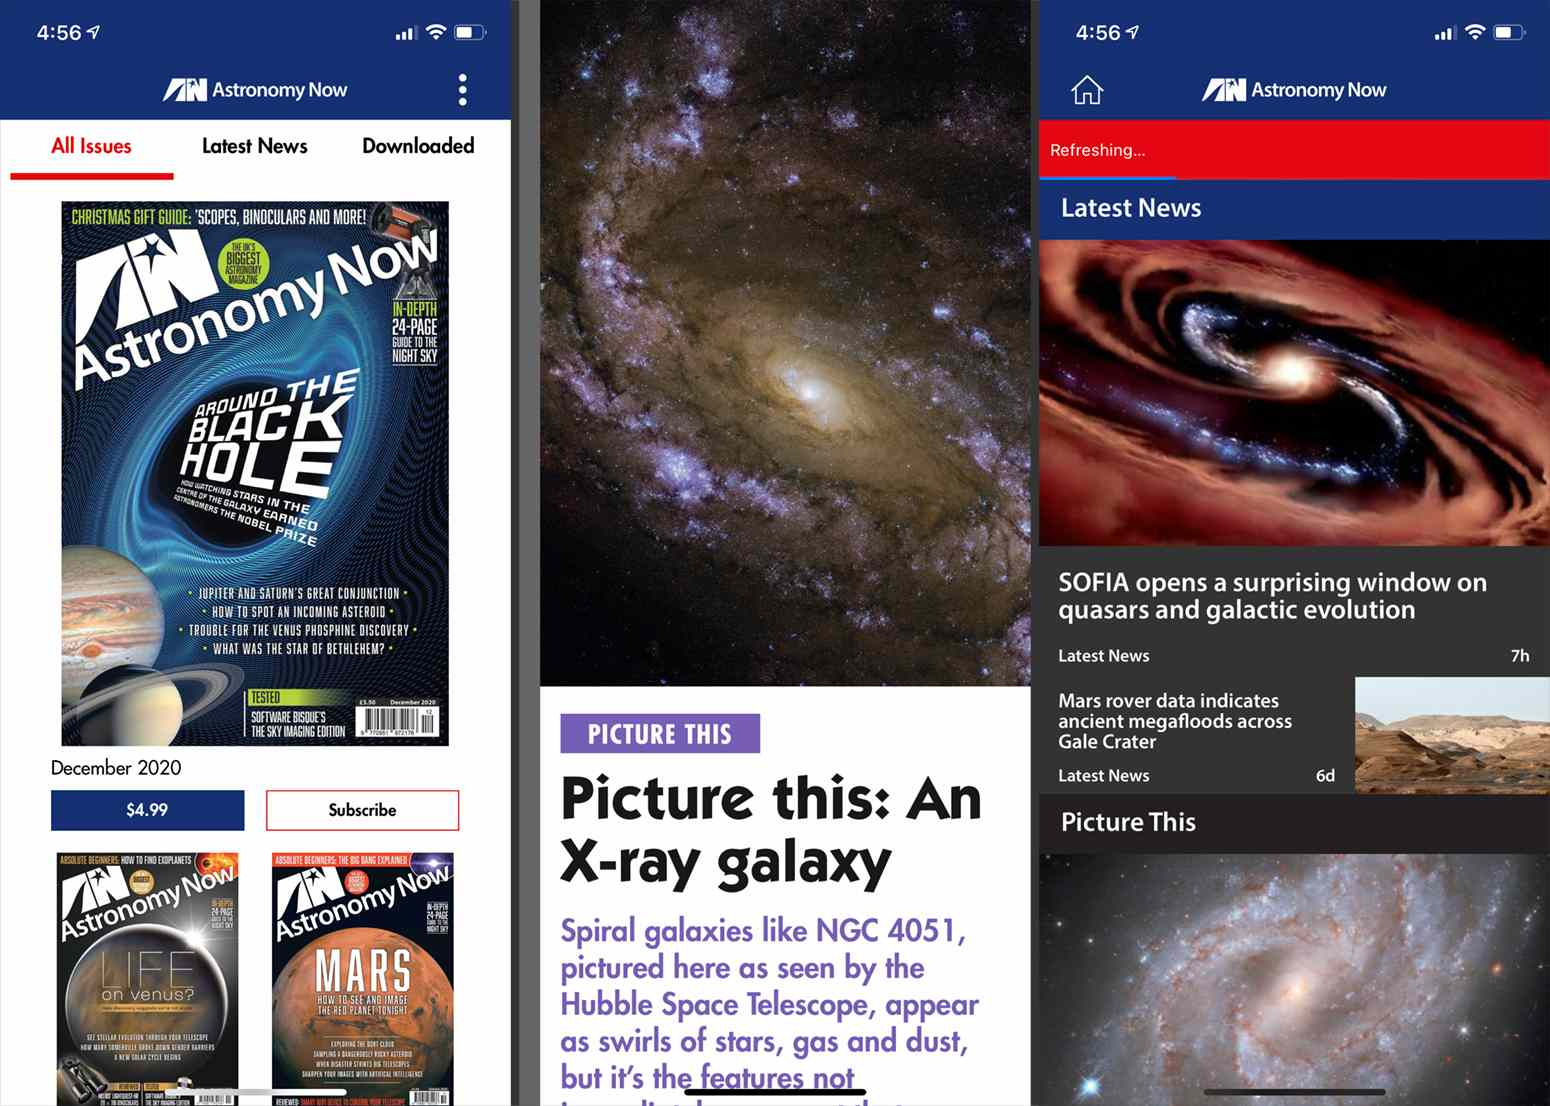 Screenshots from the Astronomy Now app.